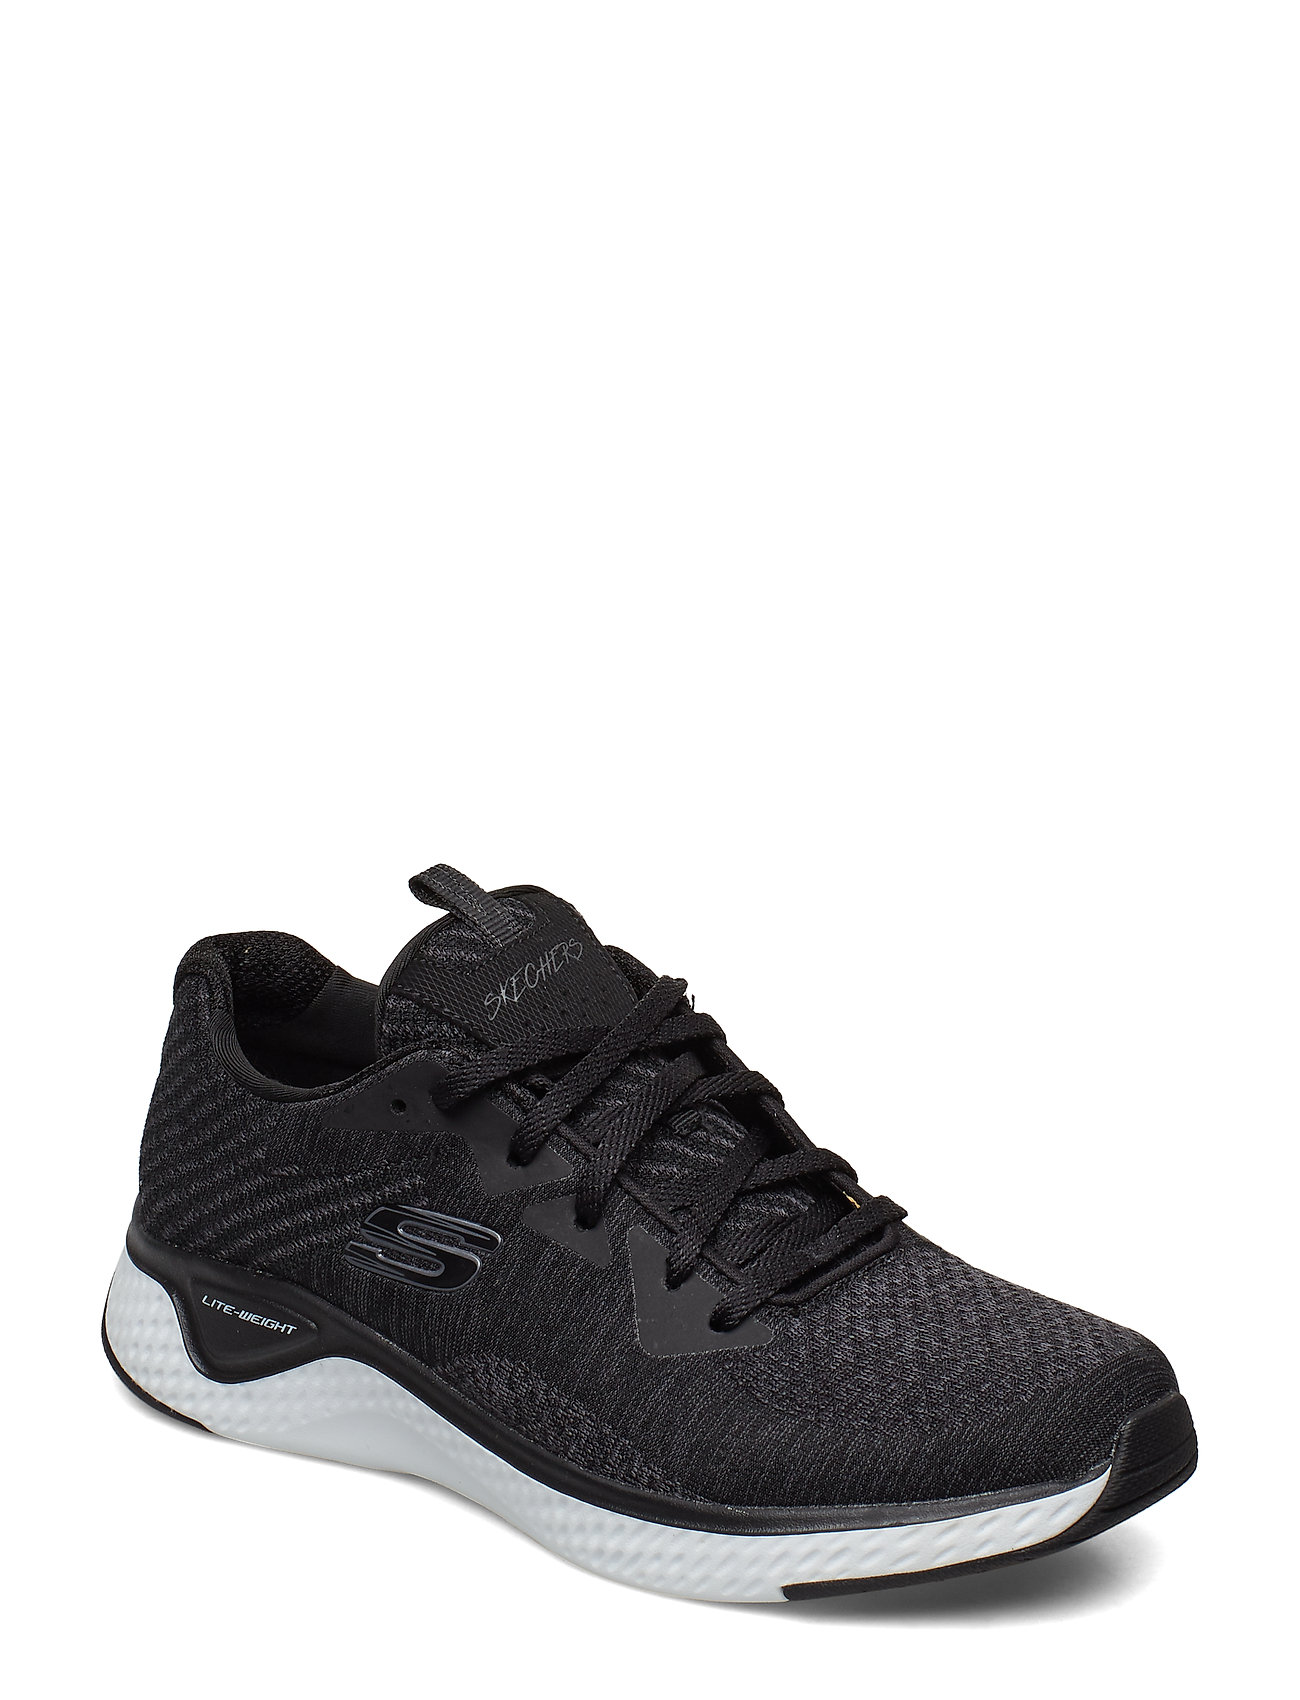 Image of Womens Solar Fuse - Brisk Escape Low-top Sneakers Sort Skechers (3428067039)